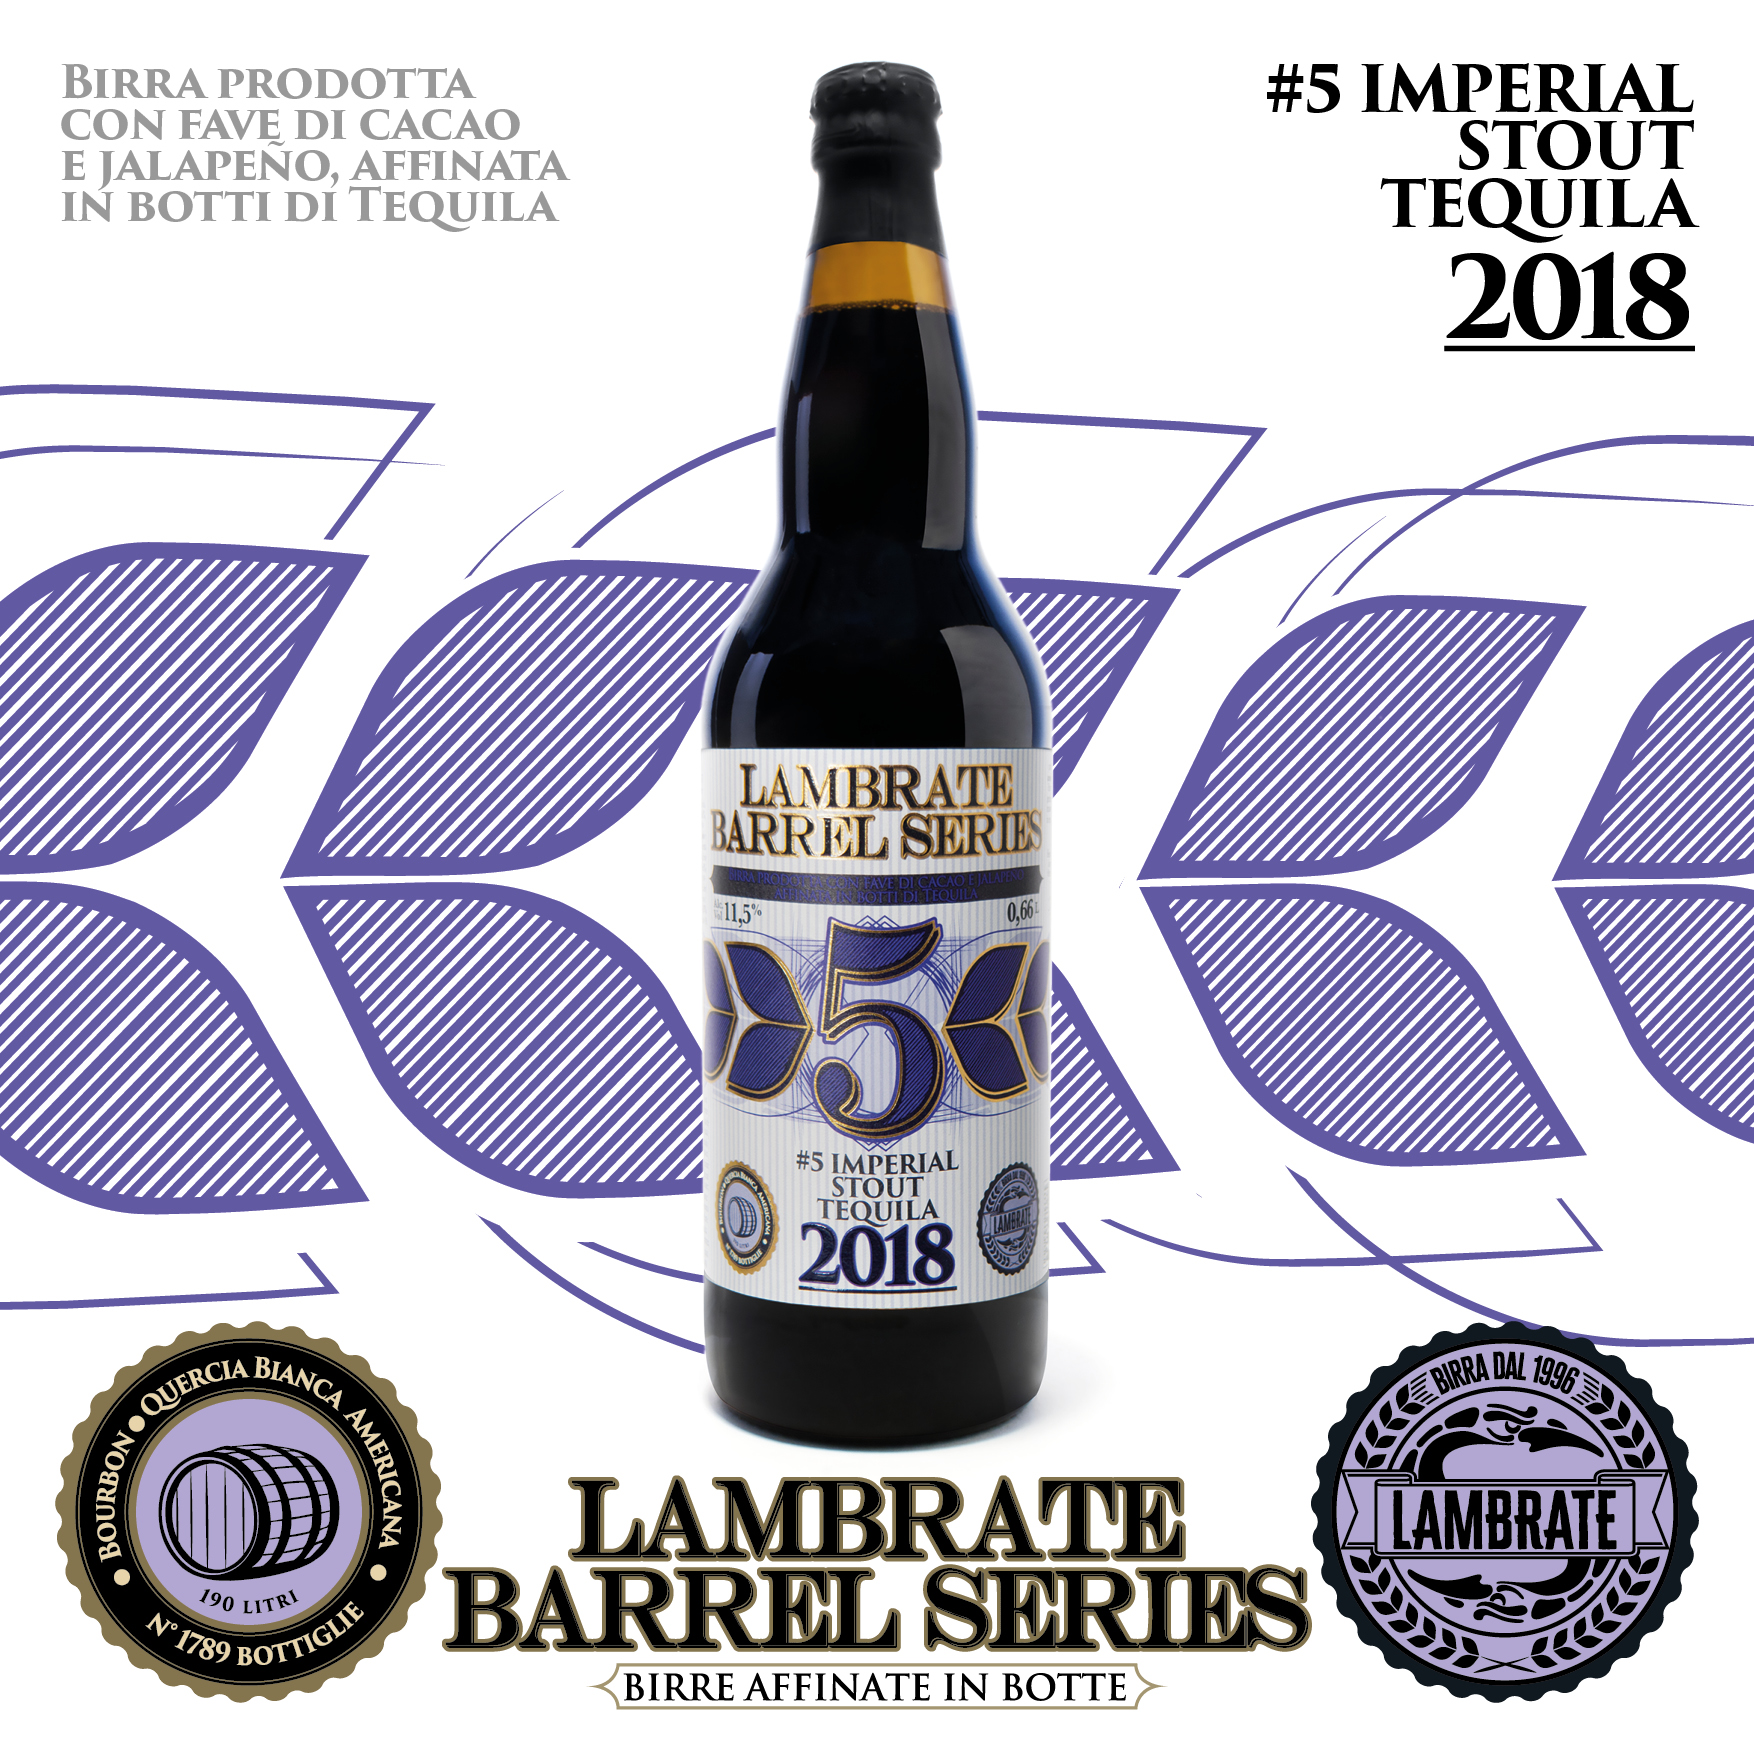 6 - #5 IMPERIAL STOUT TEQUILA B.A. 2018 1